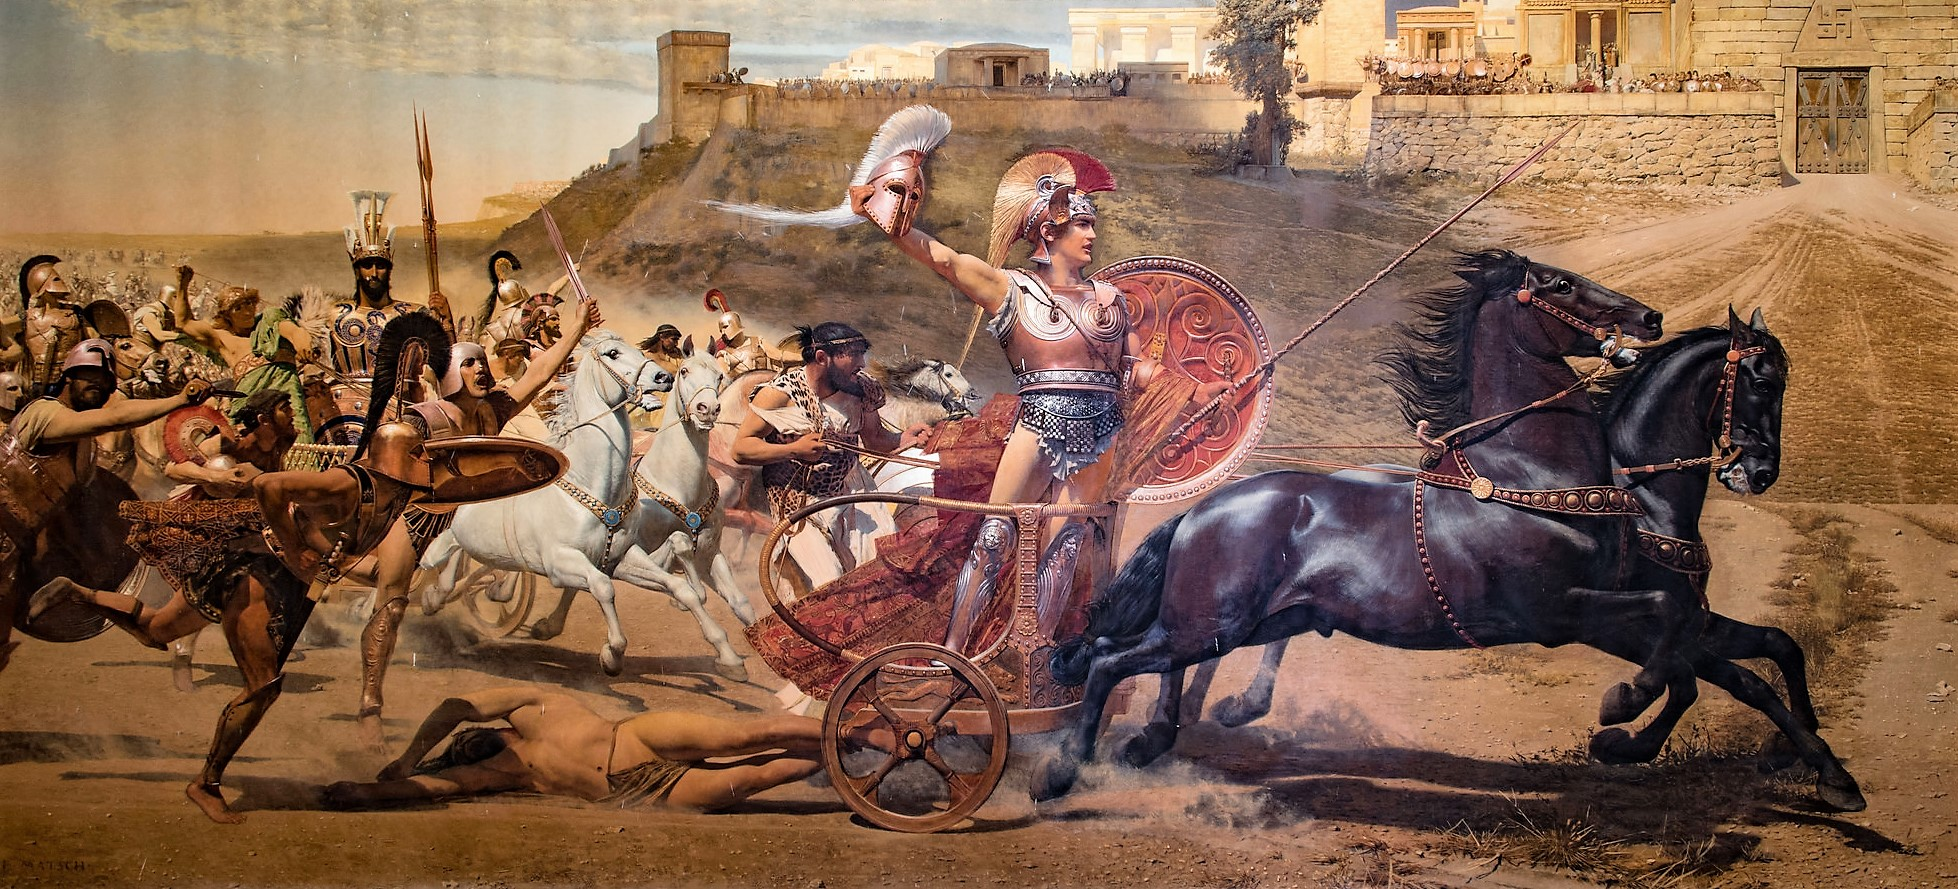 http://upload.wikimedia.org/wikipedia/commons/3/35/Triumphant_Achilles_in_Achilleion_levelled.jpg